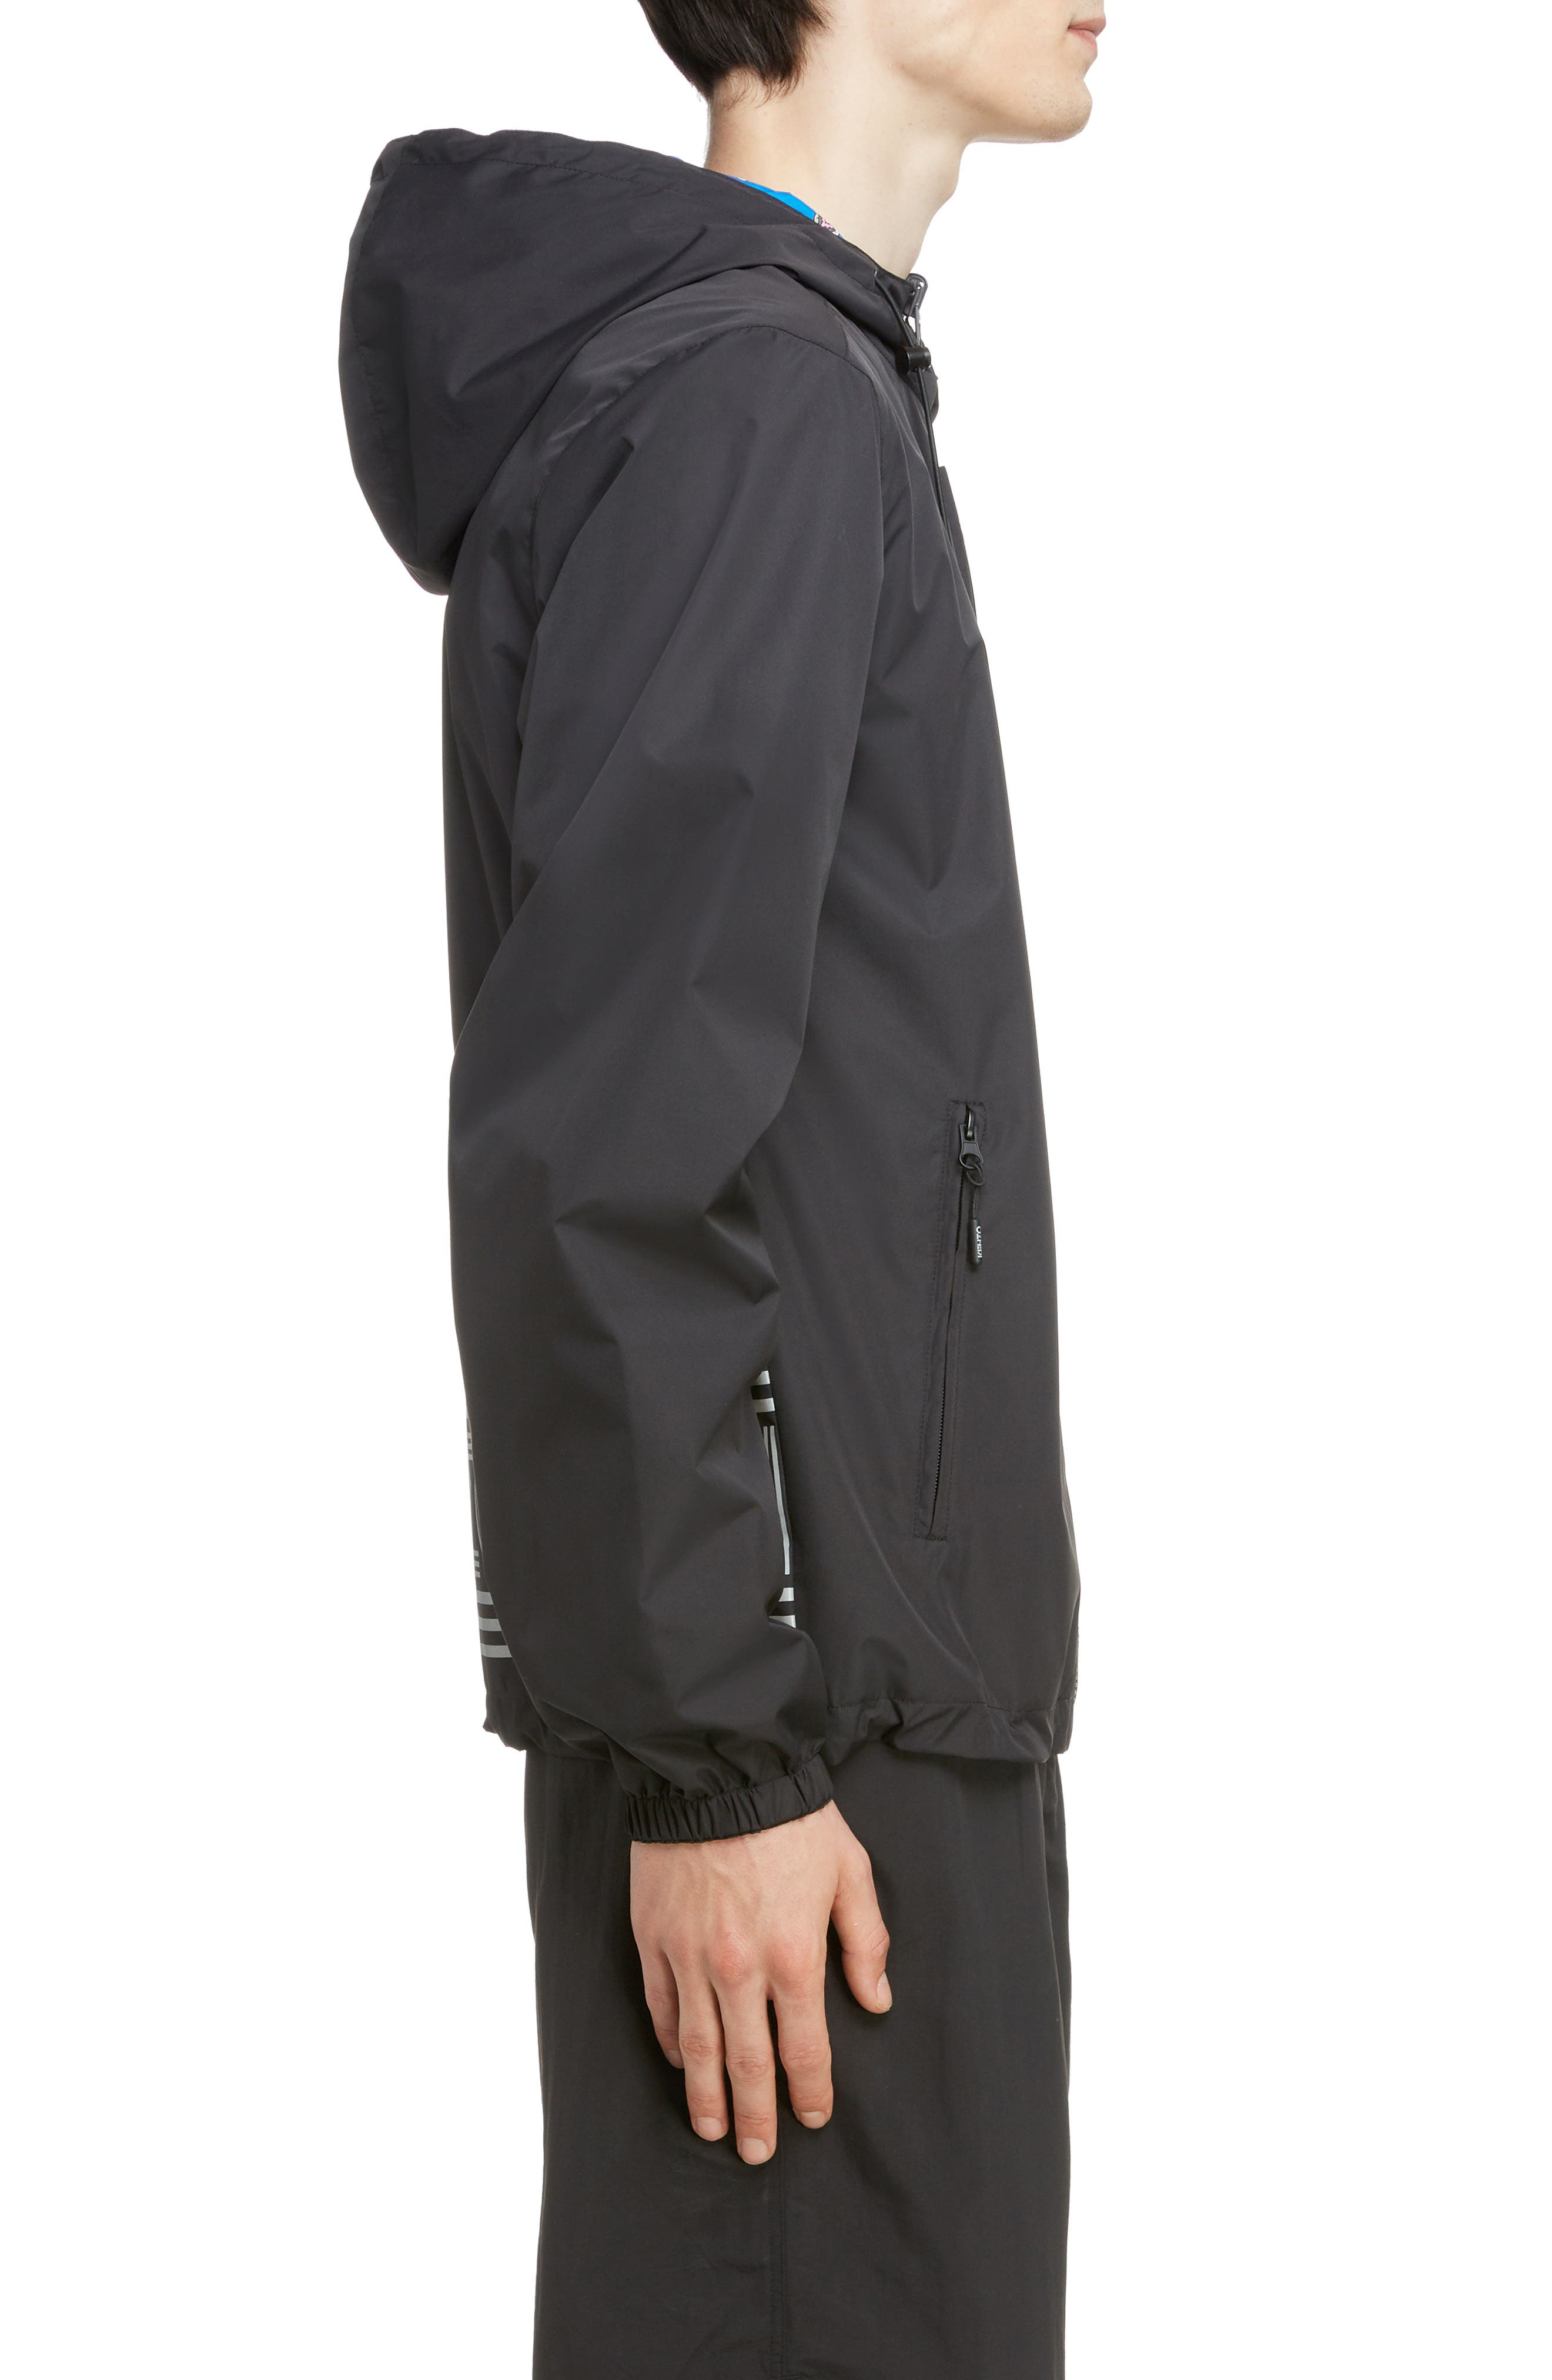 KENZO, Reversible Hooded Windbreaker, Alternate thumbnail 4, color, BLACK